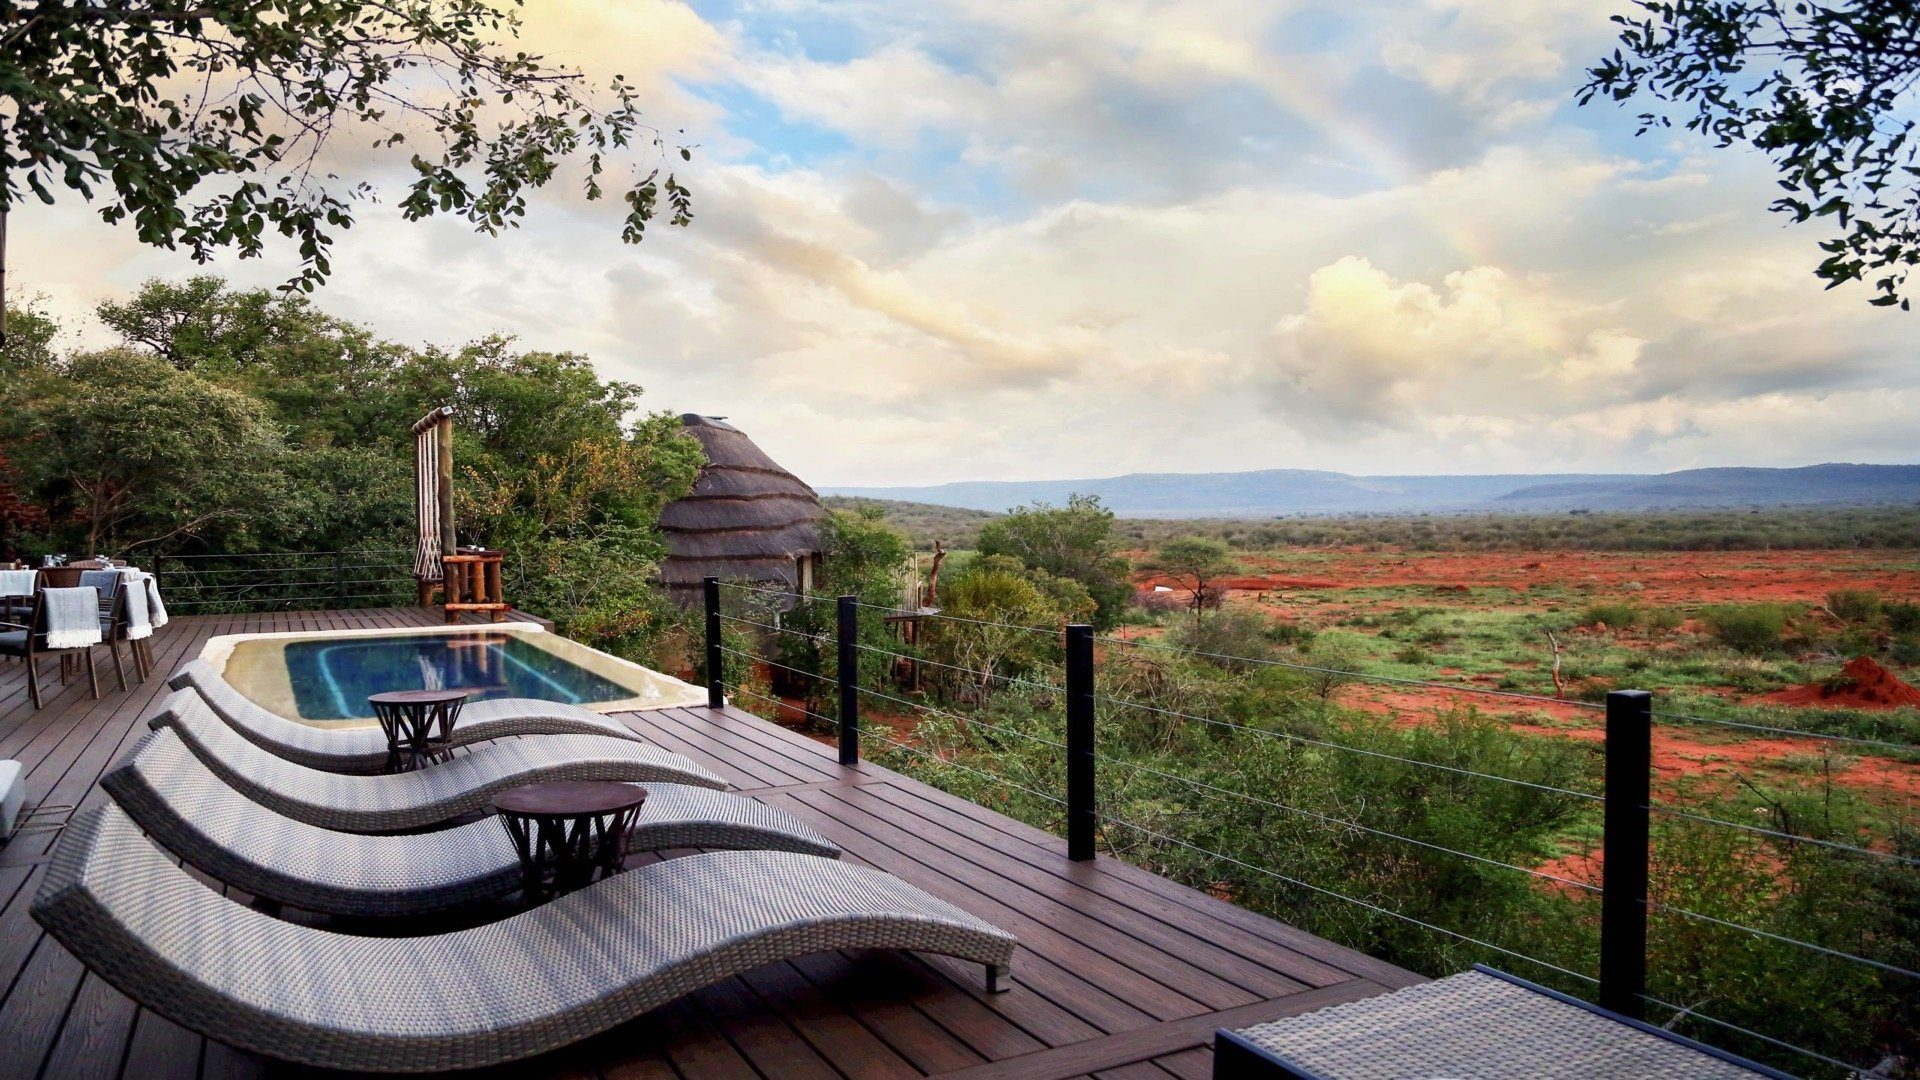 madikwe-hills-private-game-lodge.jpg